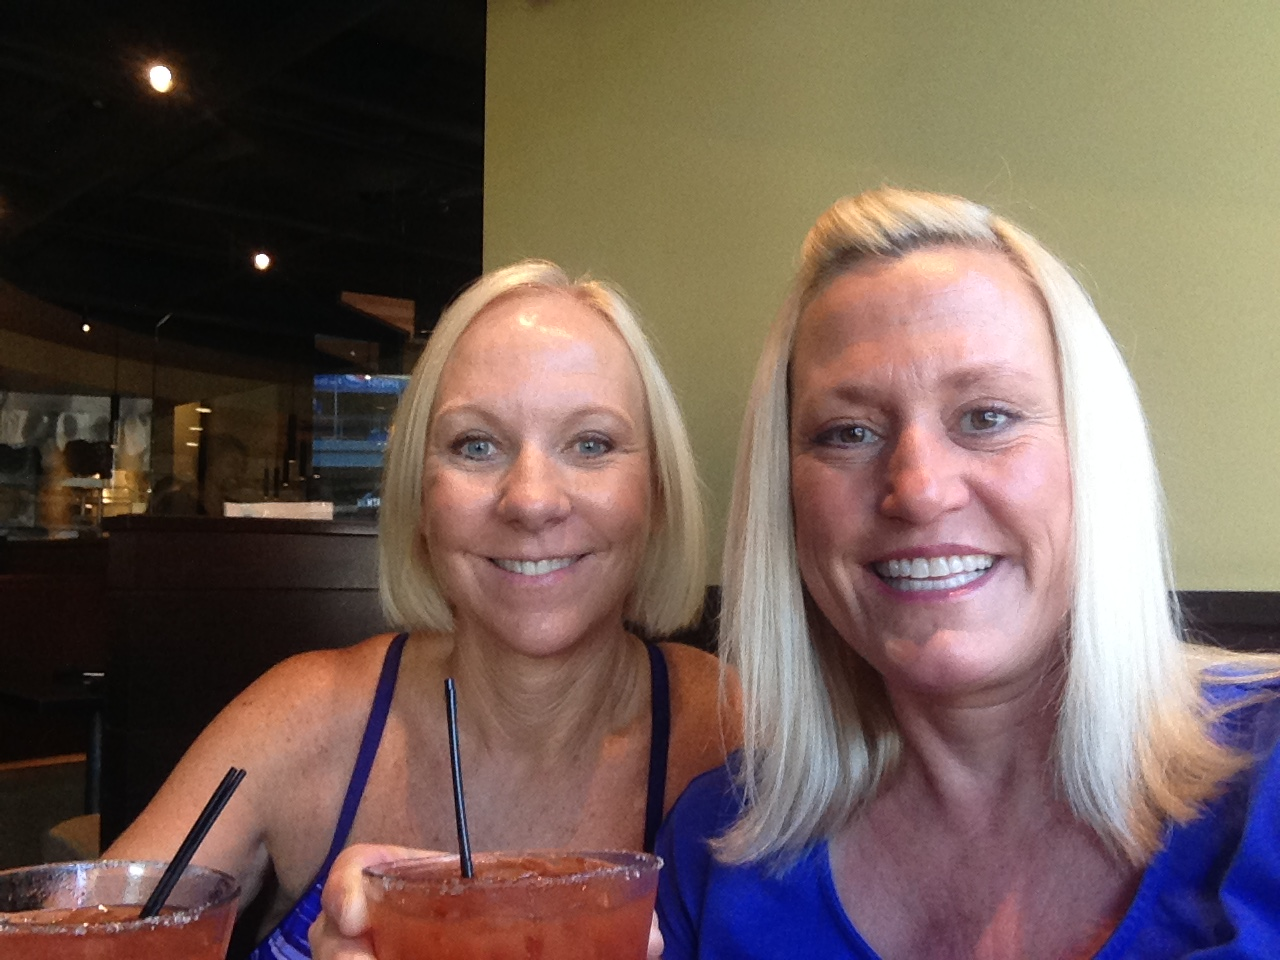 A bloody mary toast to our friendship.